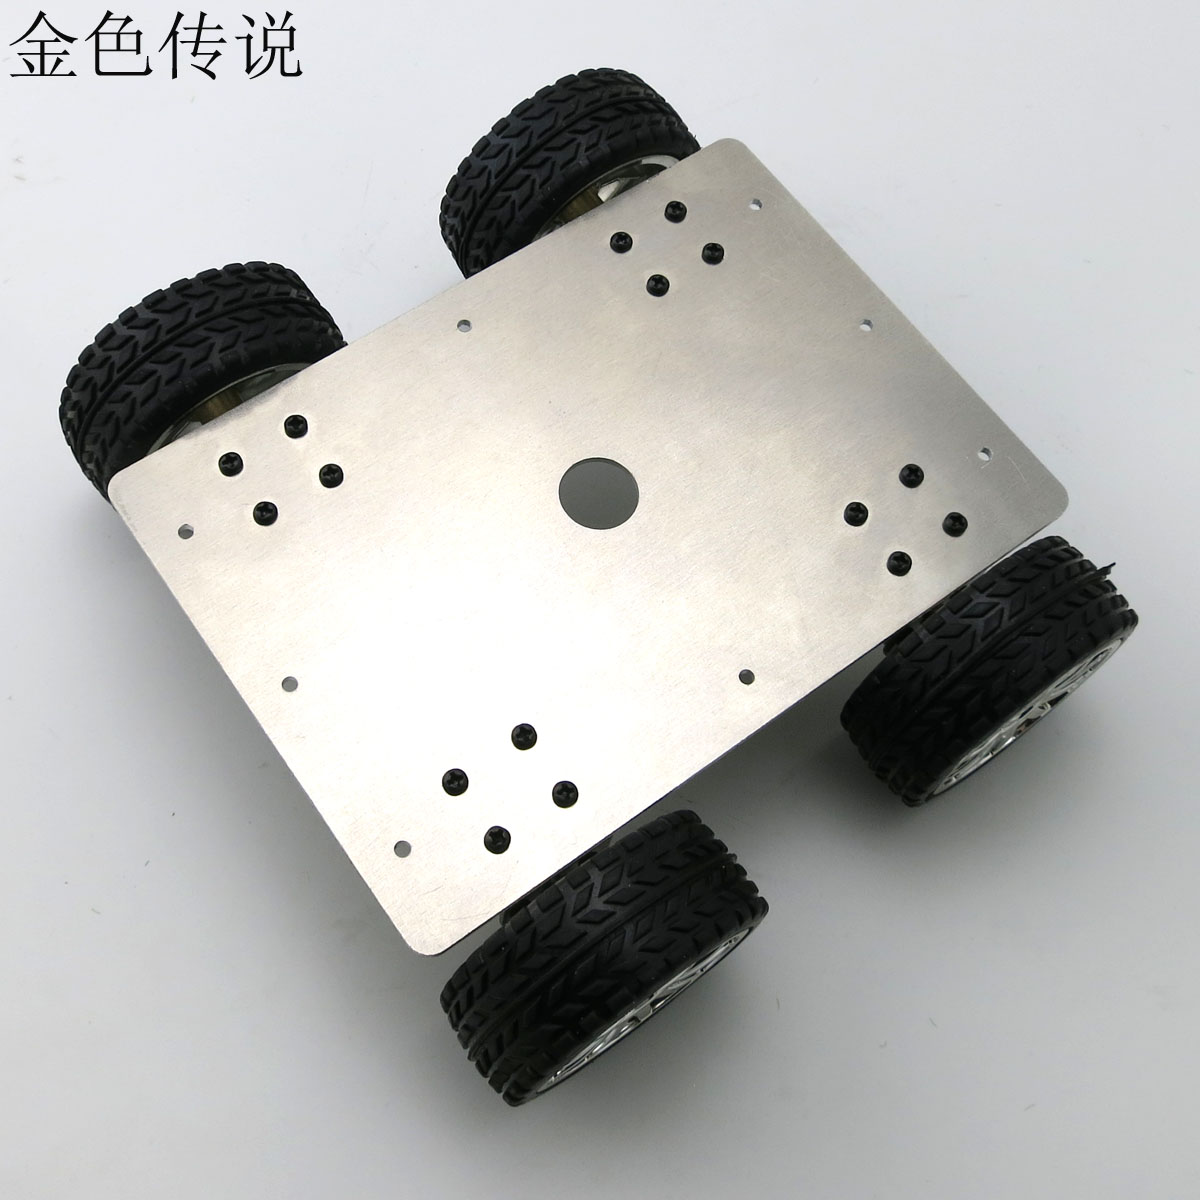 25 type aluminum alloy wheel drive car tracking car driving robot 4 4WD smart car chassis 2 wheel drive robot chassis kit 1 deck